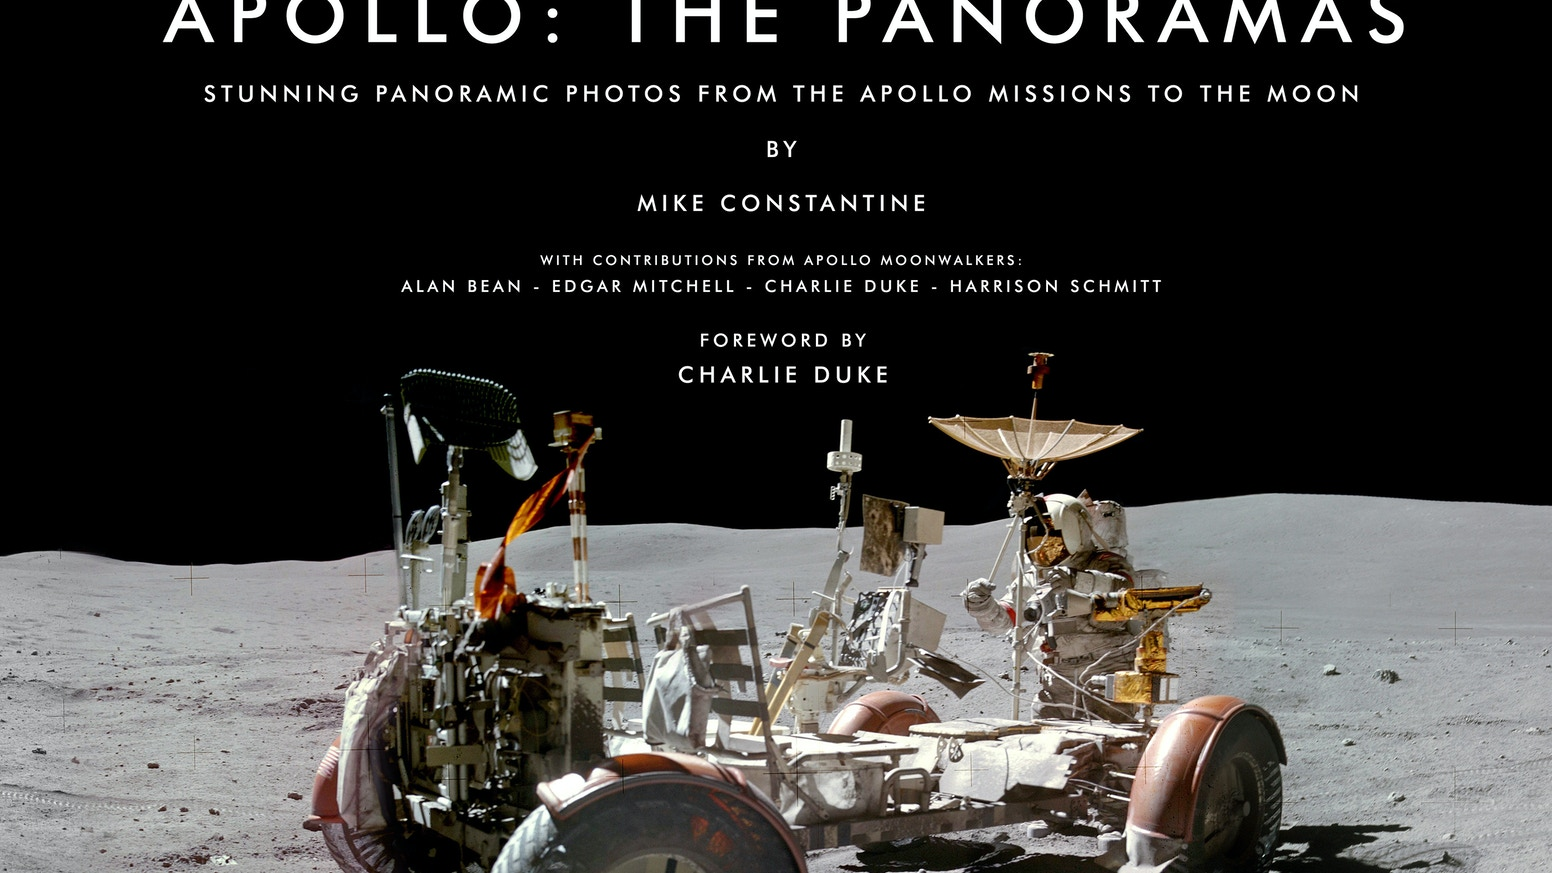 Apollo: The Panoramas is a hardcover book containing over 50 stunning lunar surface panoramas from the Apollo missions to the Moon